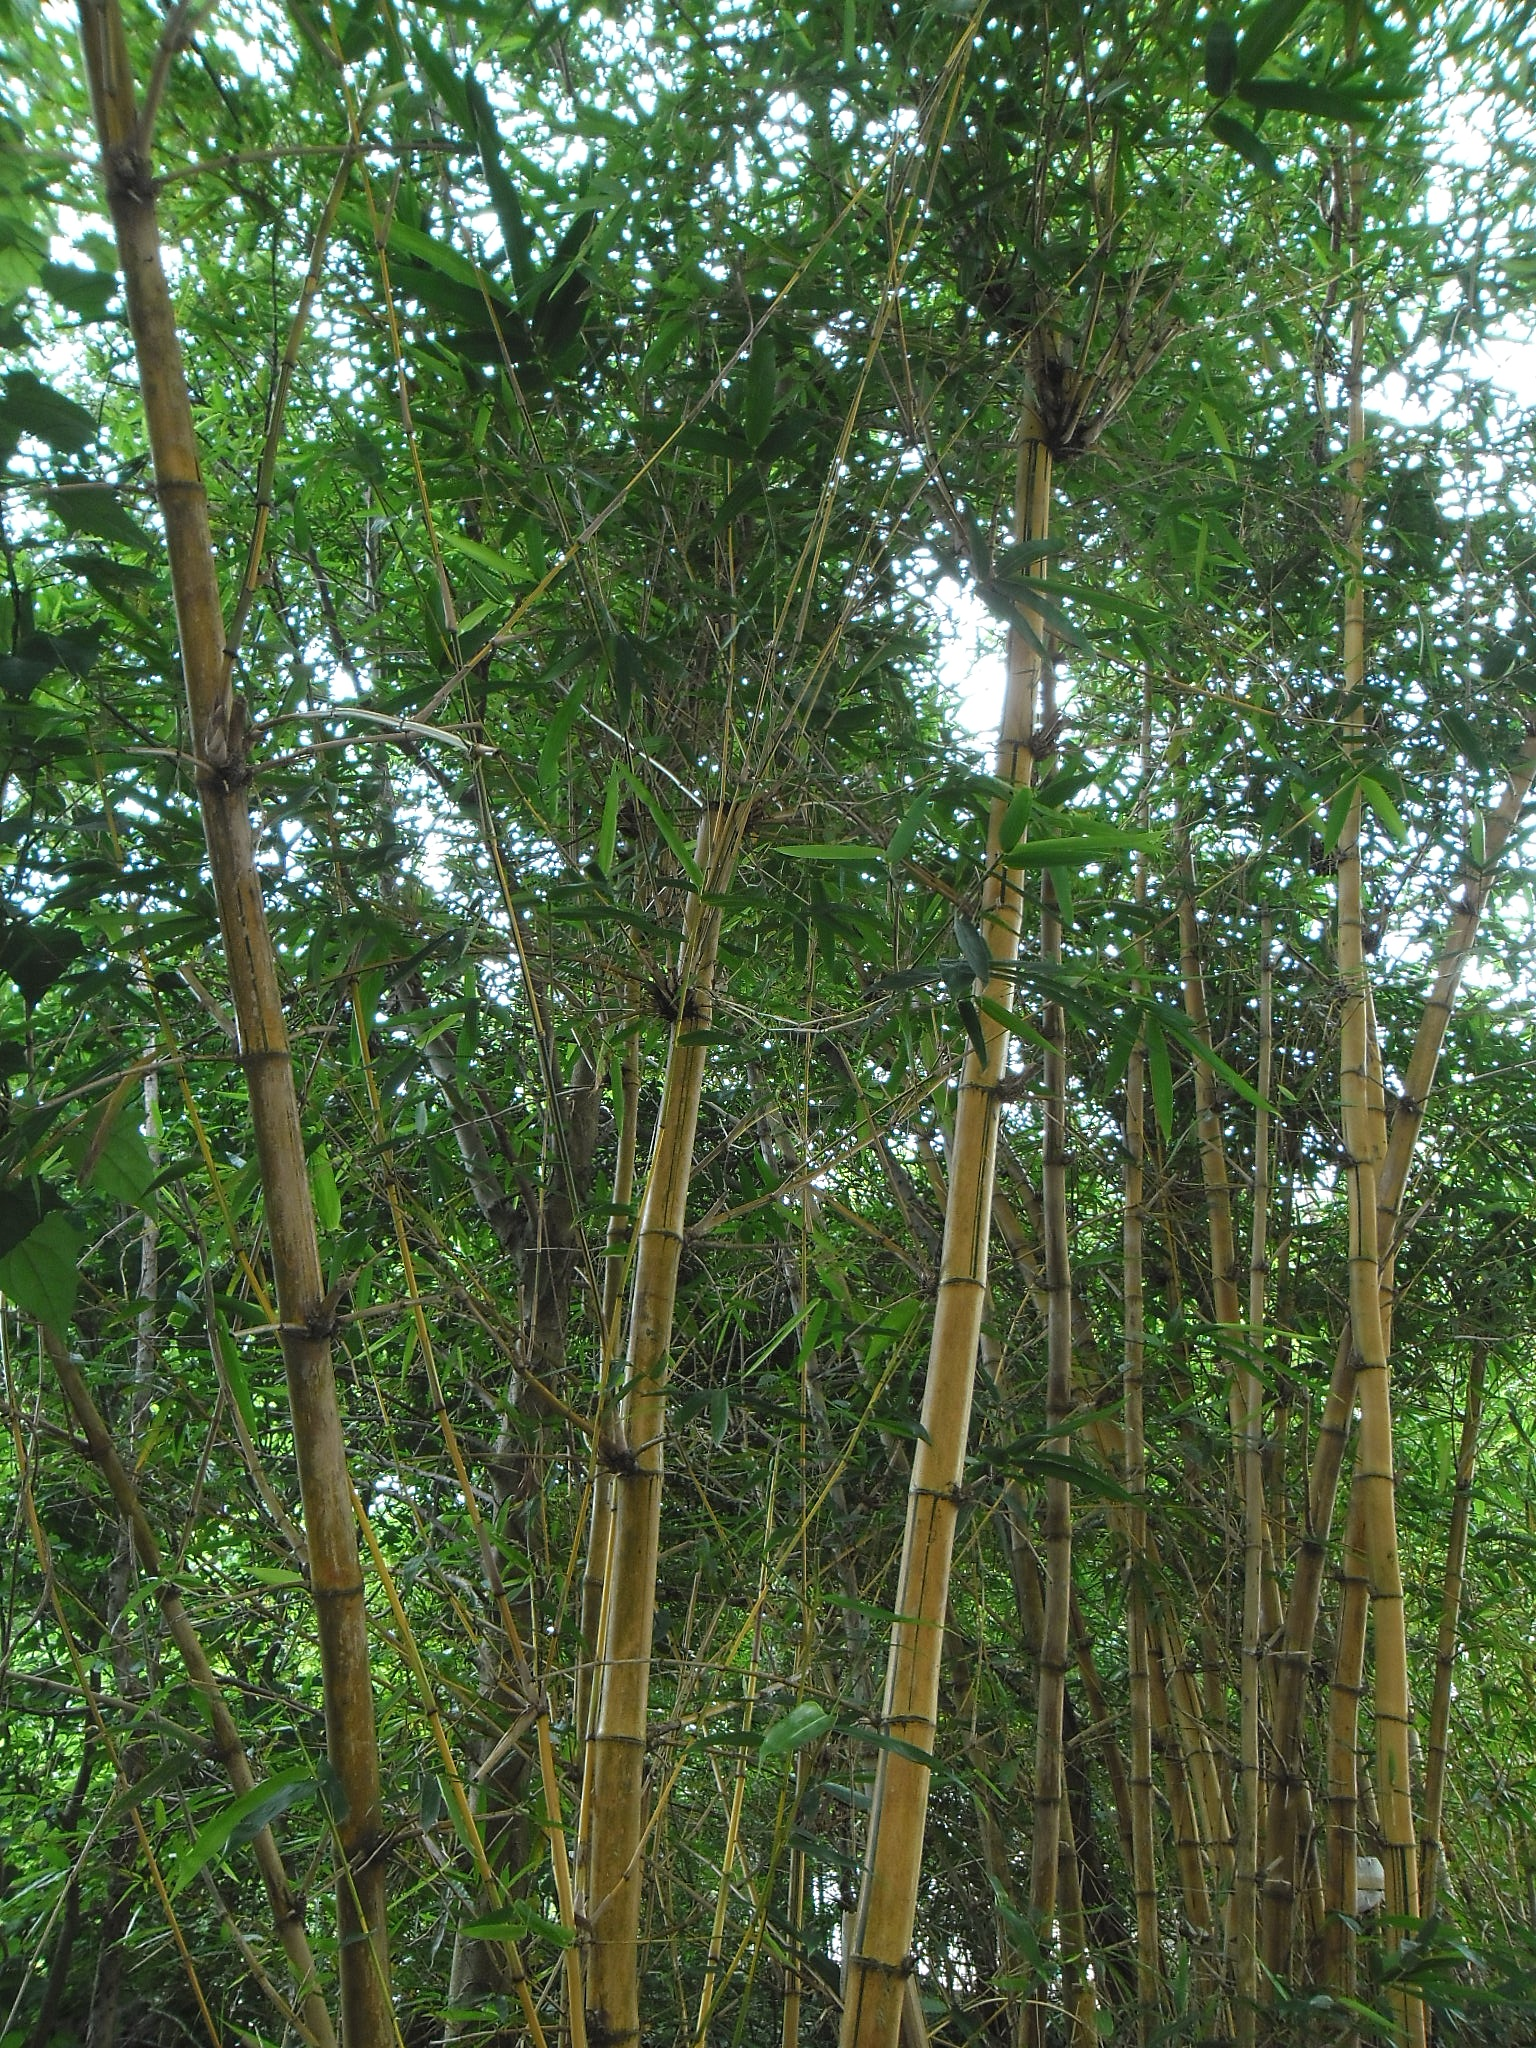 https://upload.wikimedia.org/wikipedia/commons/1/10/Golden_Bamboo%28Bambusa_vulgaris%29_in_Hong_Kong.jpg